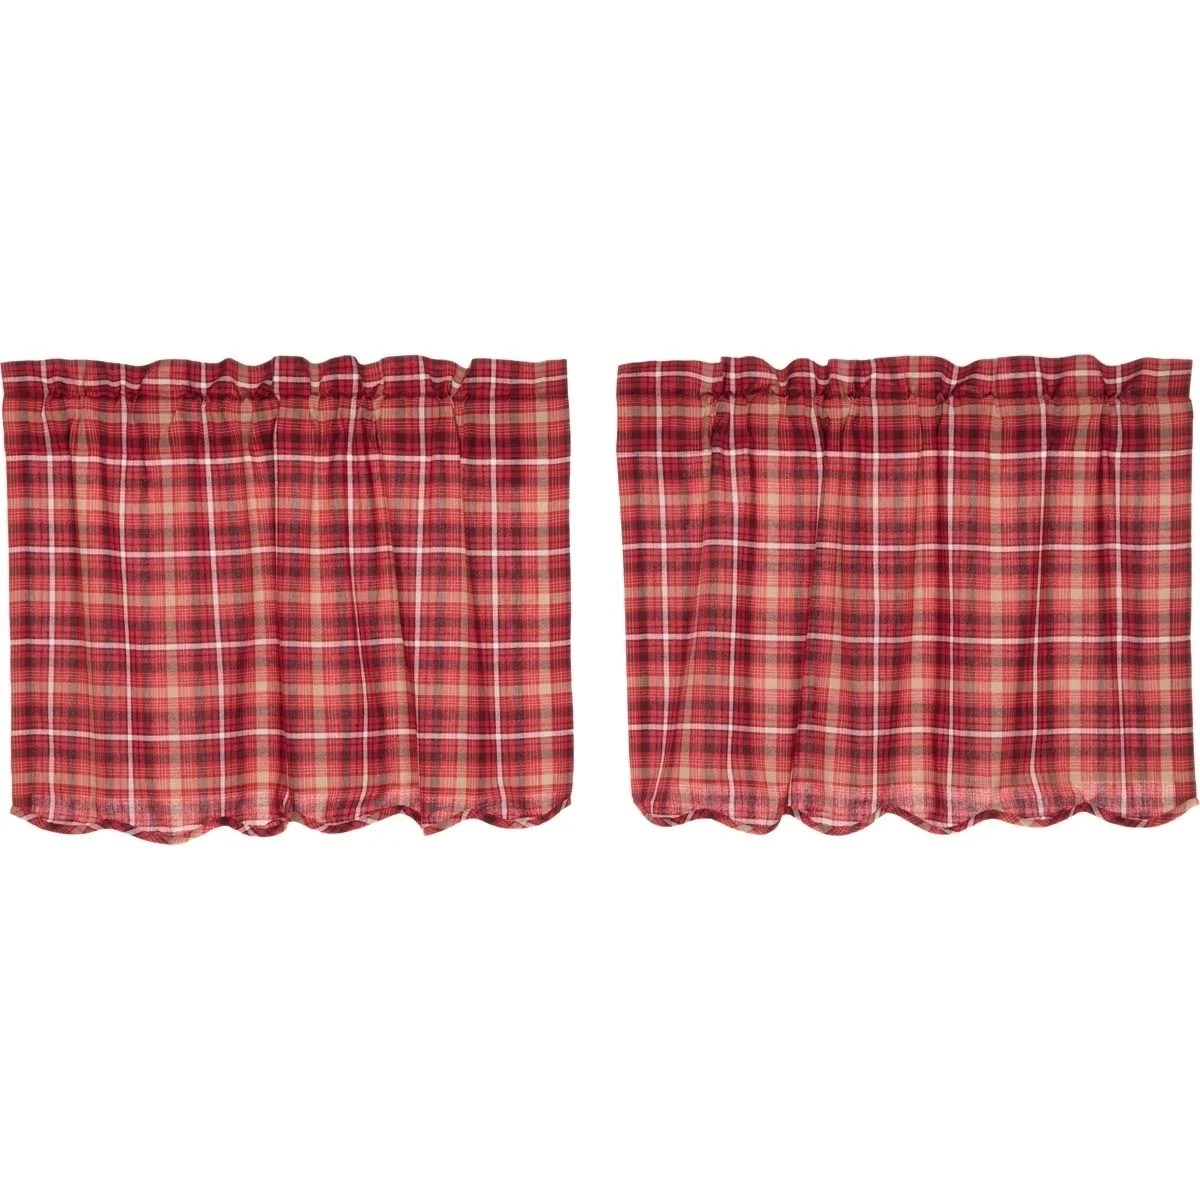 Red Rustic Kitchen Curtains Vhc Braxton Tier Pair Rod Pocket Cotton Plaid Overstock 17926208